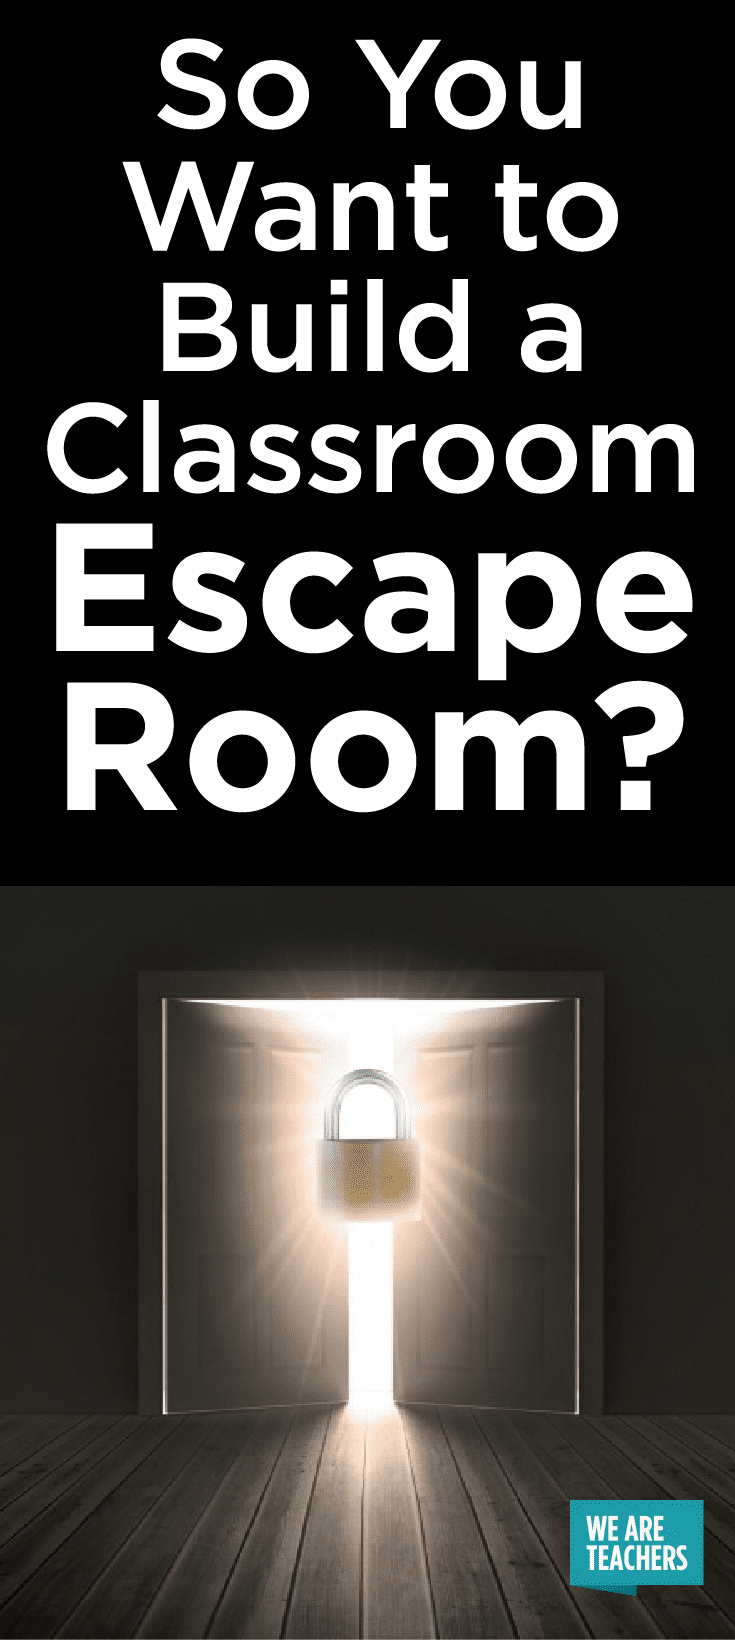 So You Want To Build A Classroom Escape Room Lesson - Printable Escape Room Free